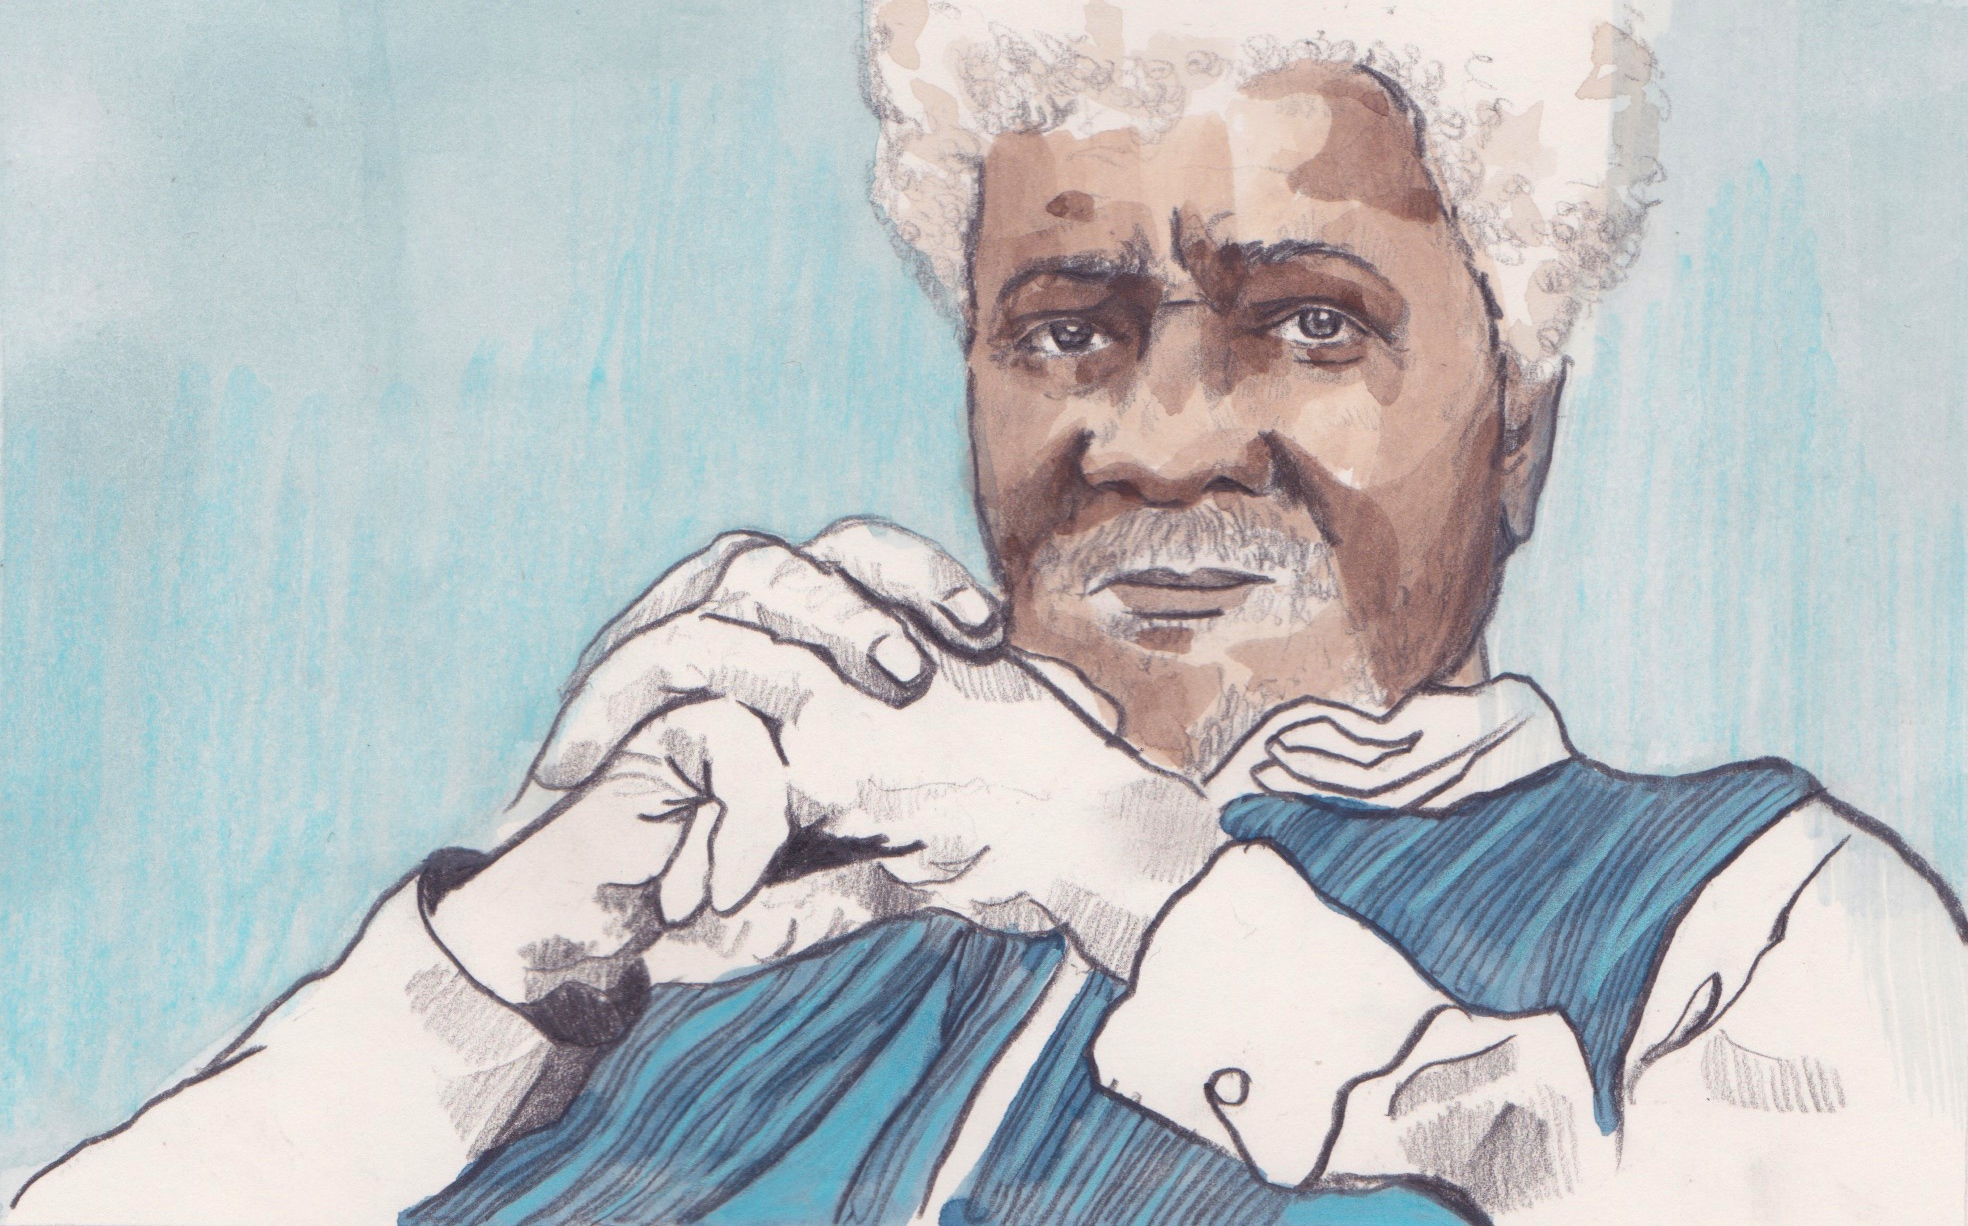 29/03/15Nobel laureate and former Nigerian political prisoner Wole Soyinka railed against what is thought to have been the most expensive election in African history. He thought the Nigerian presidential election was wasteful and insensitive in terms of what people live on